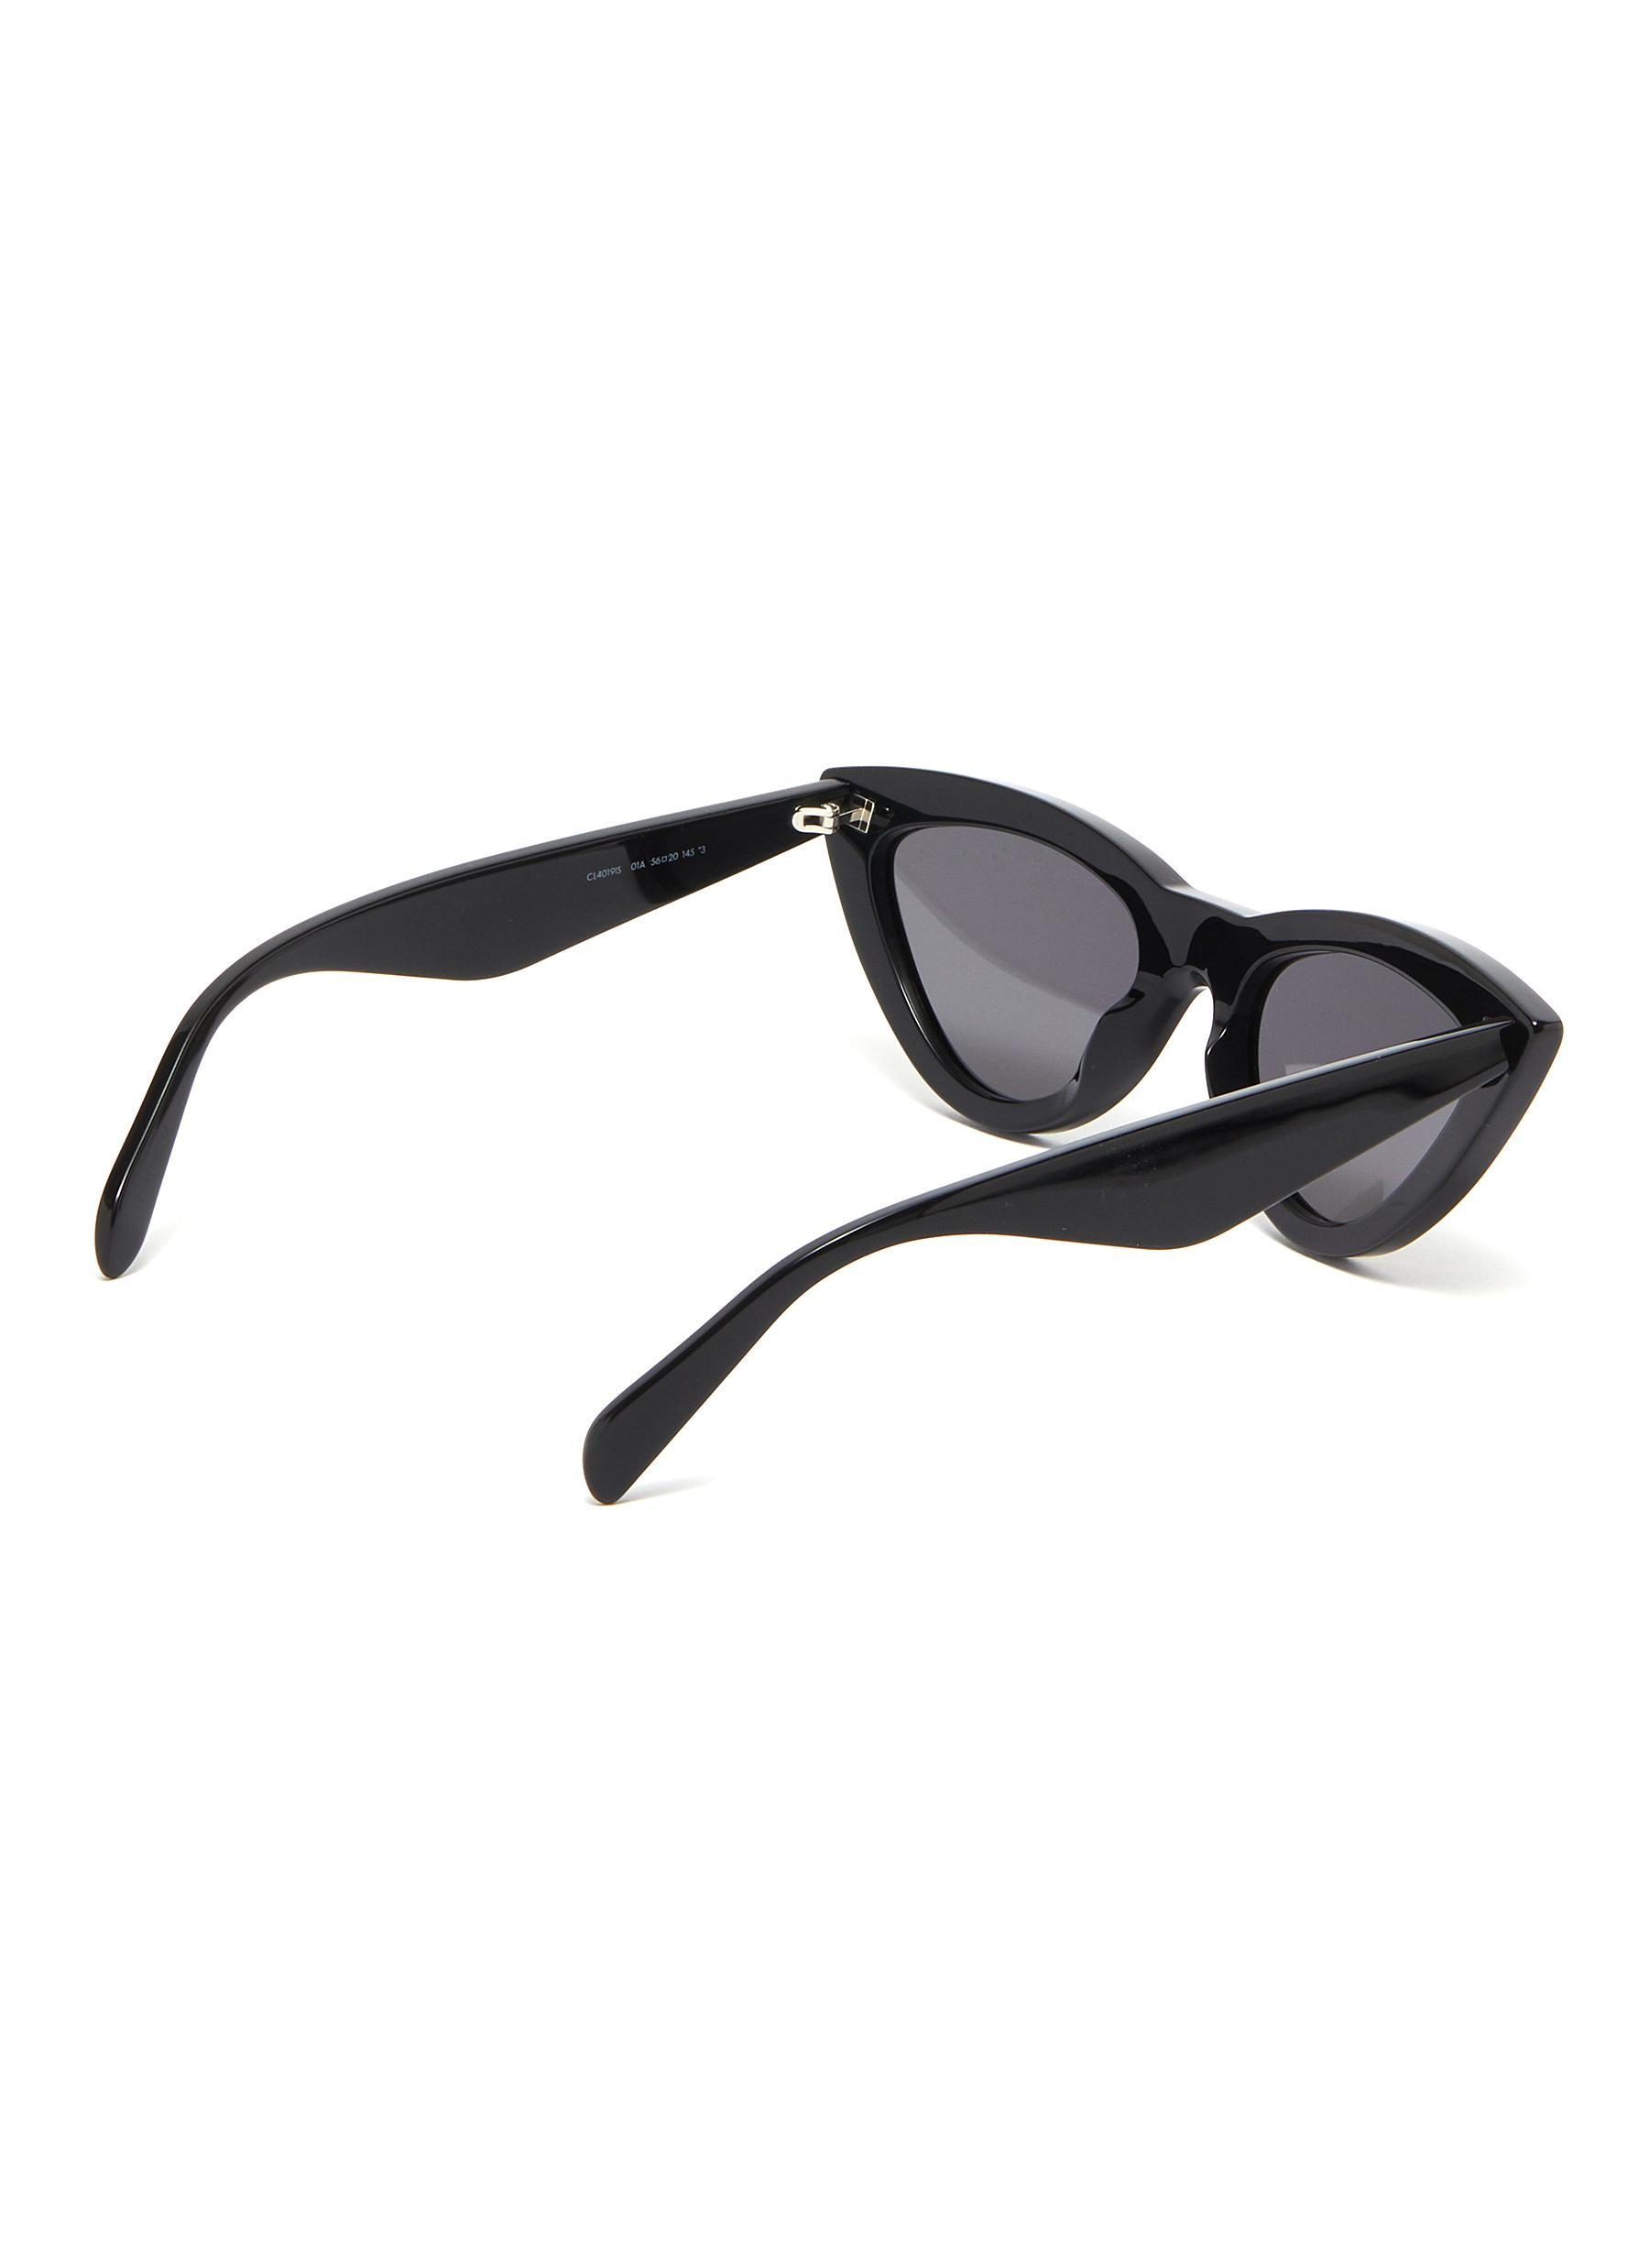 1de3d3346f71 Céline - Black Strass Rim Acetate Cat Eye Sunglasses - Lyst. View fullscreen